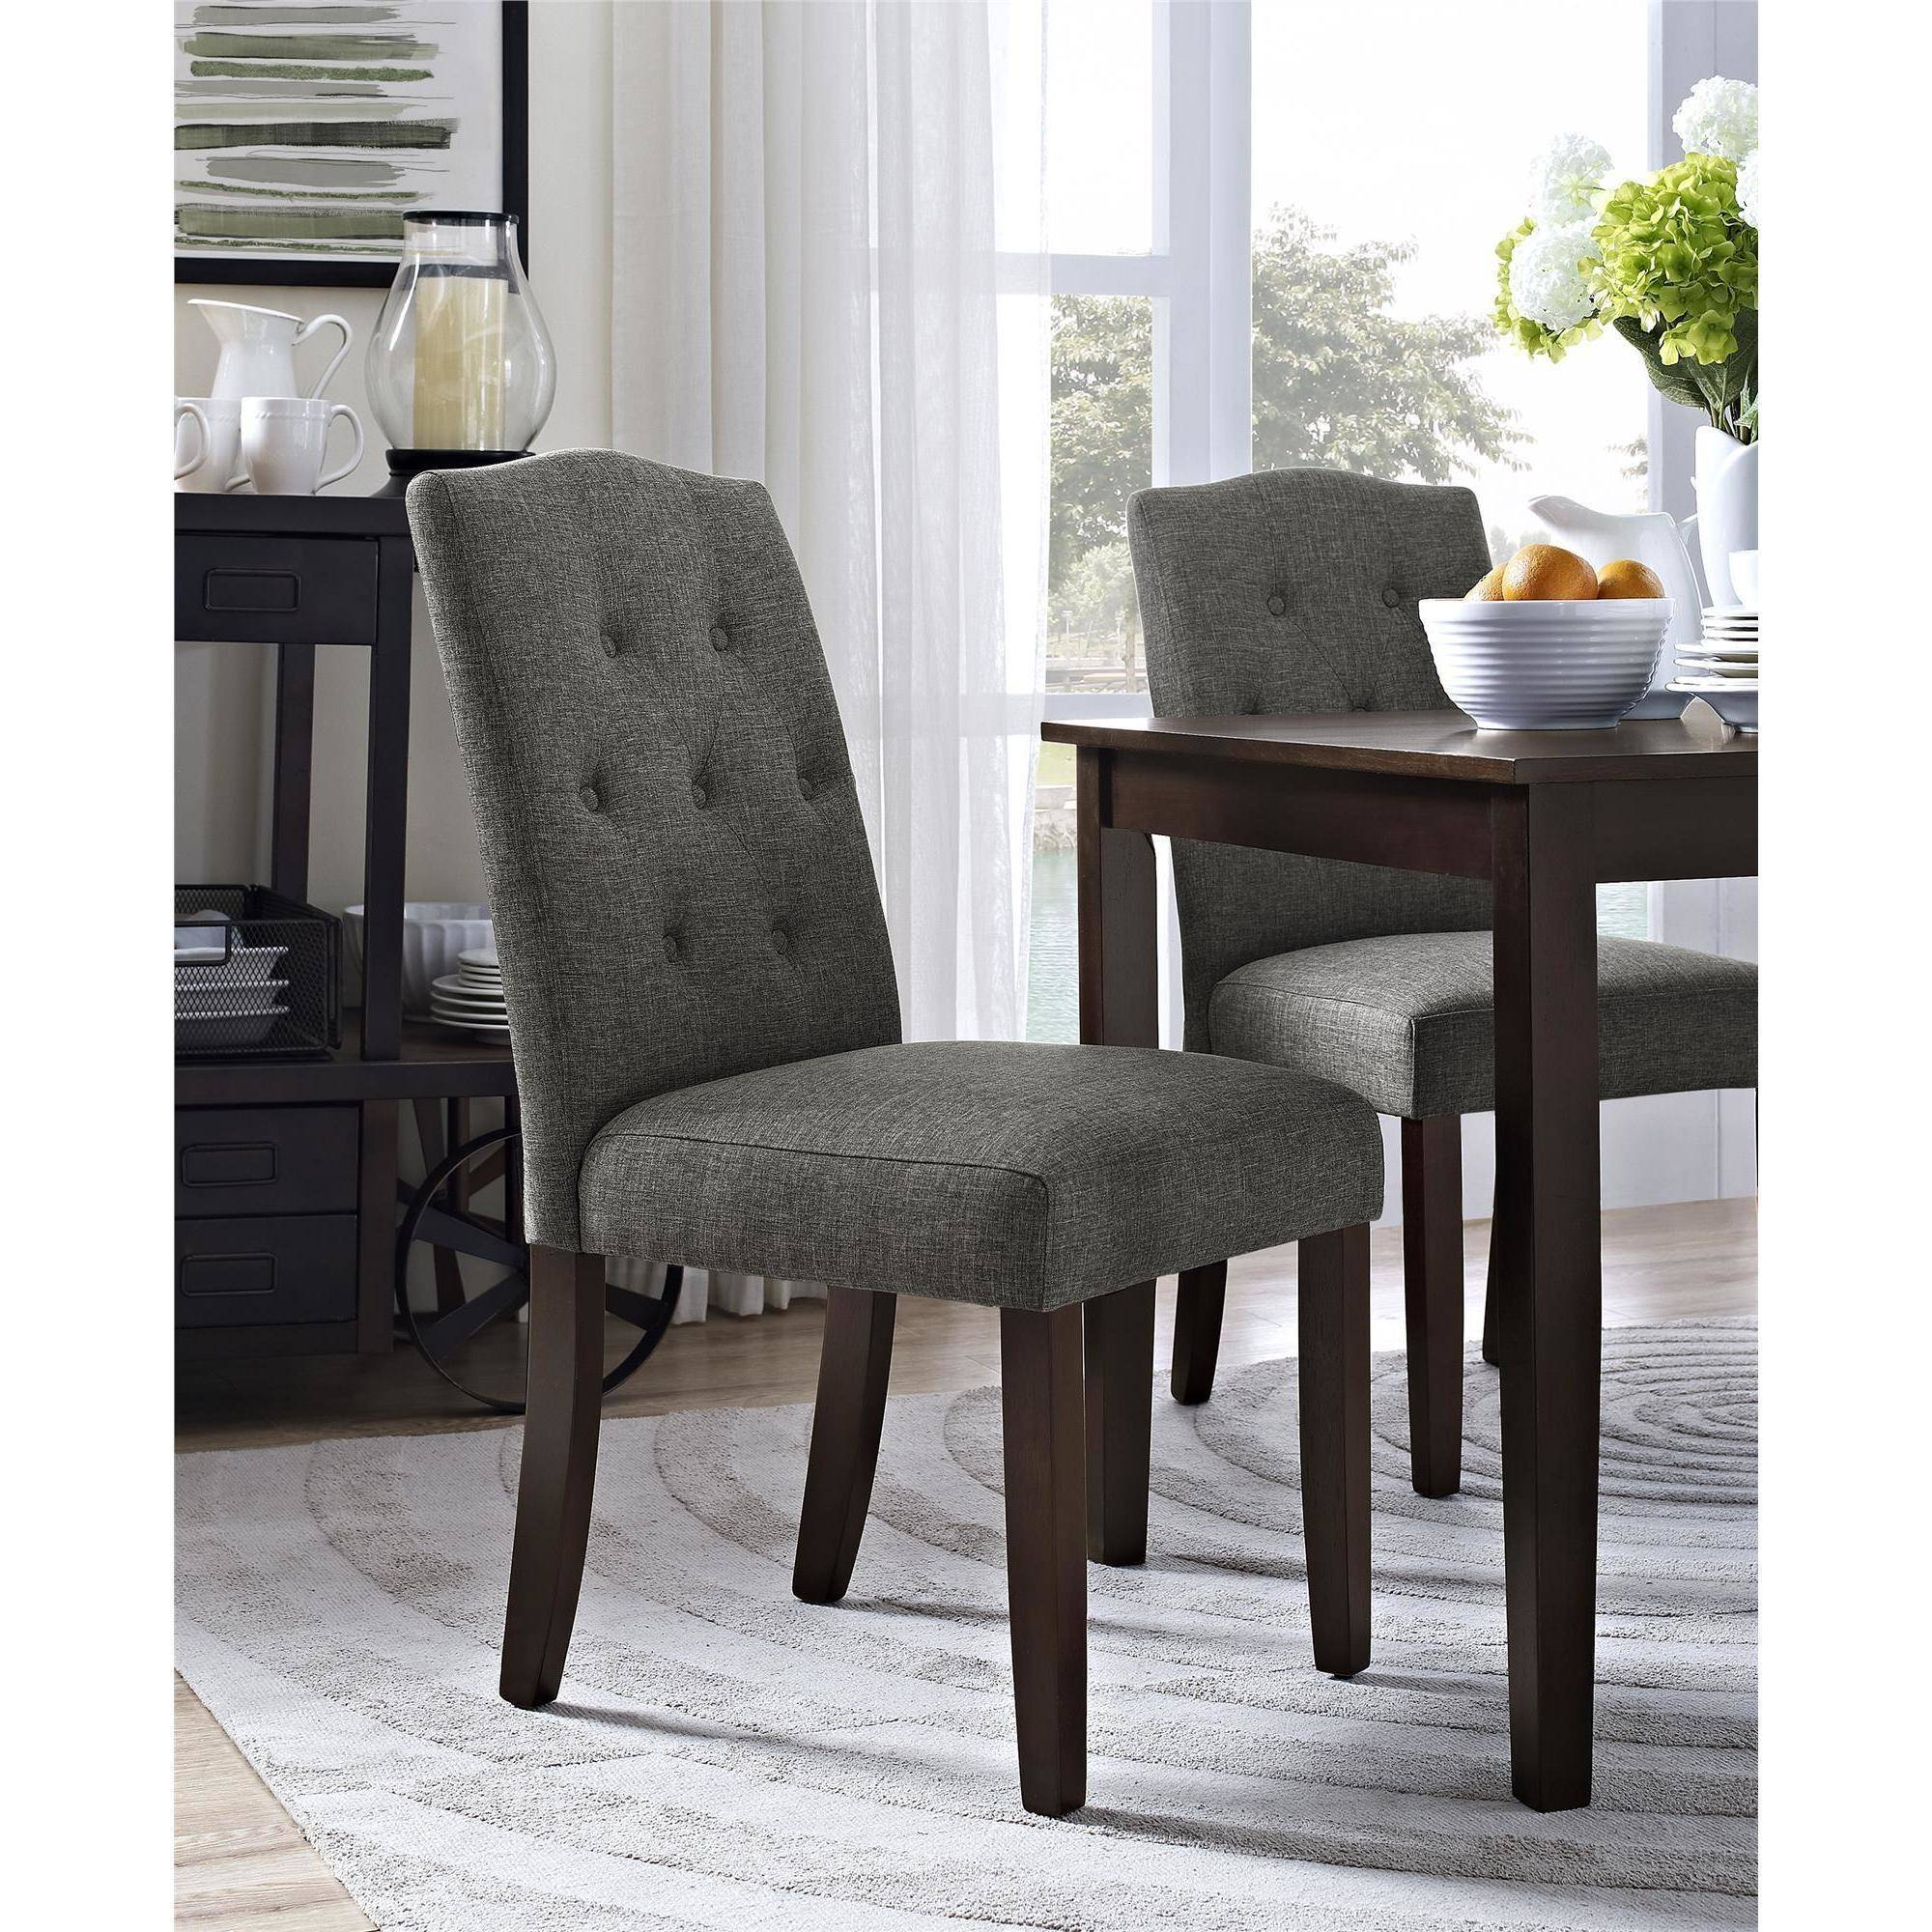 Tufted Dining Chair New Dining Chairs Best Selling Home